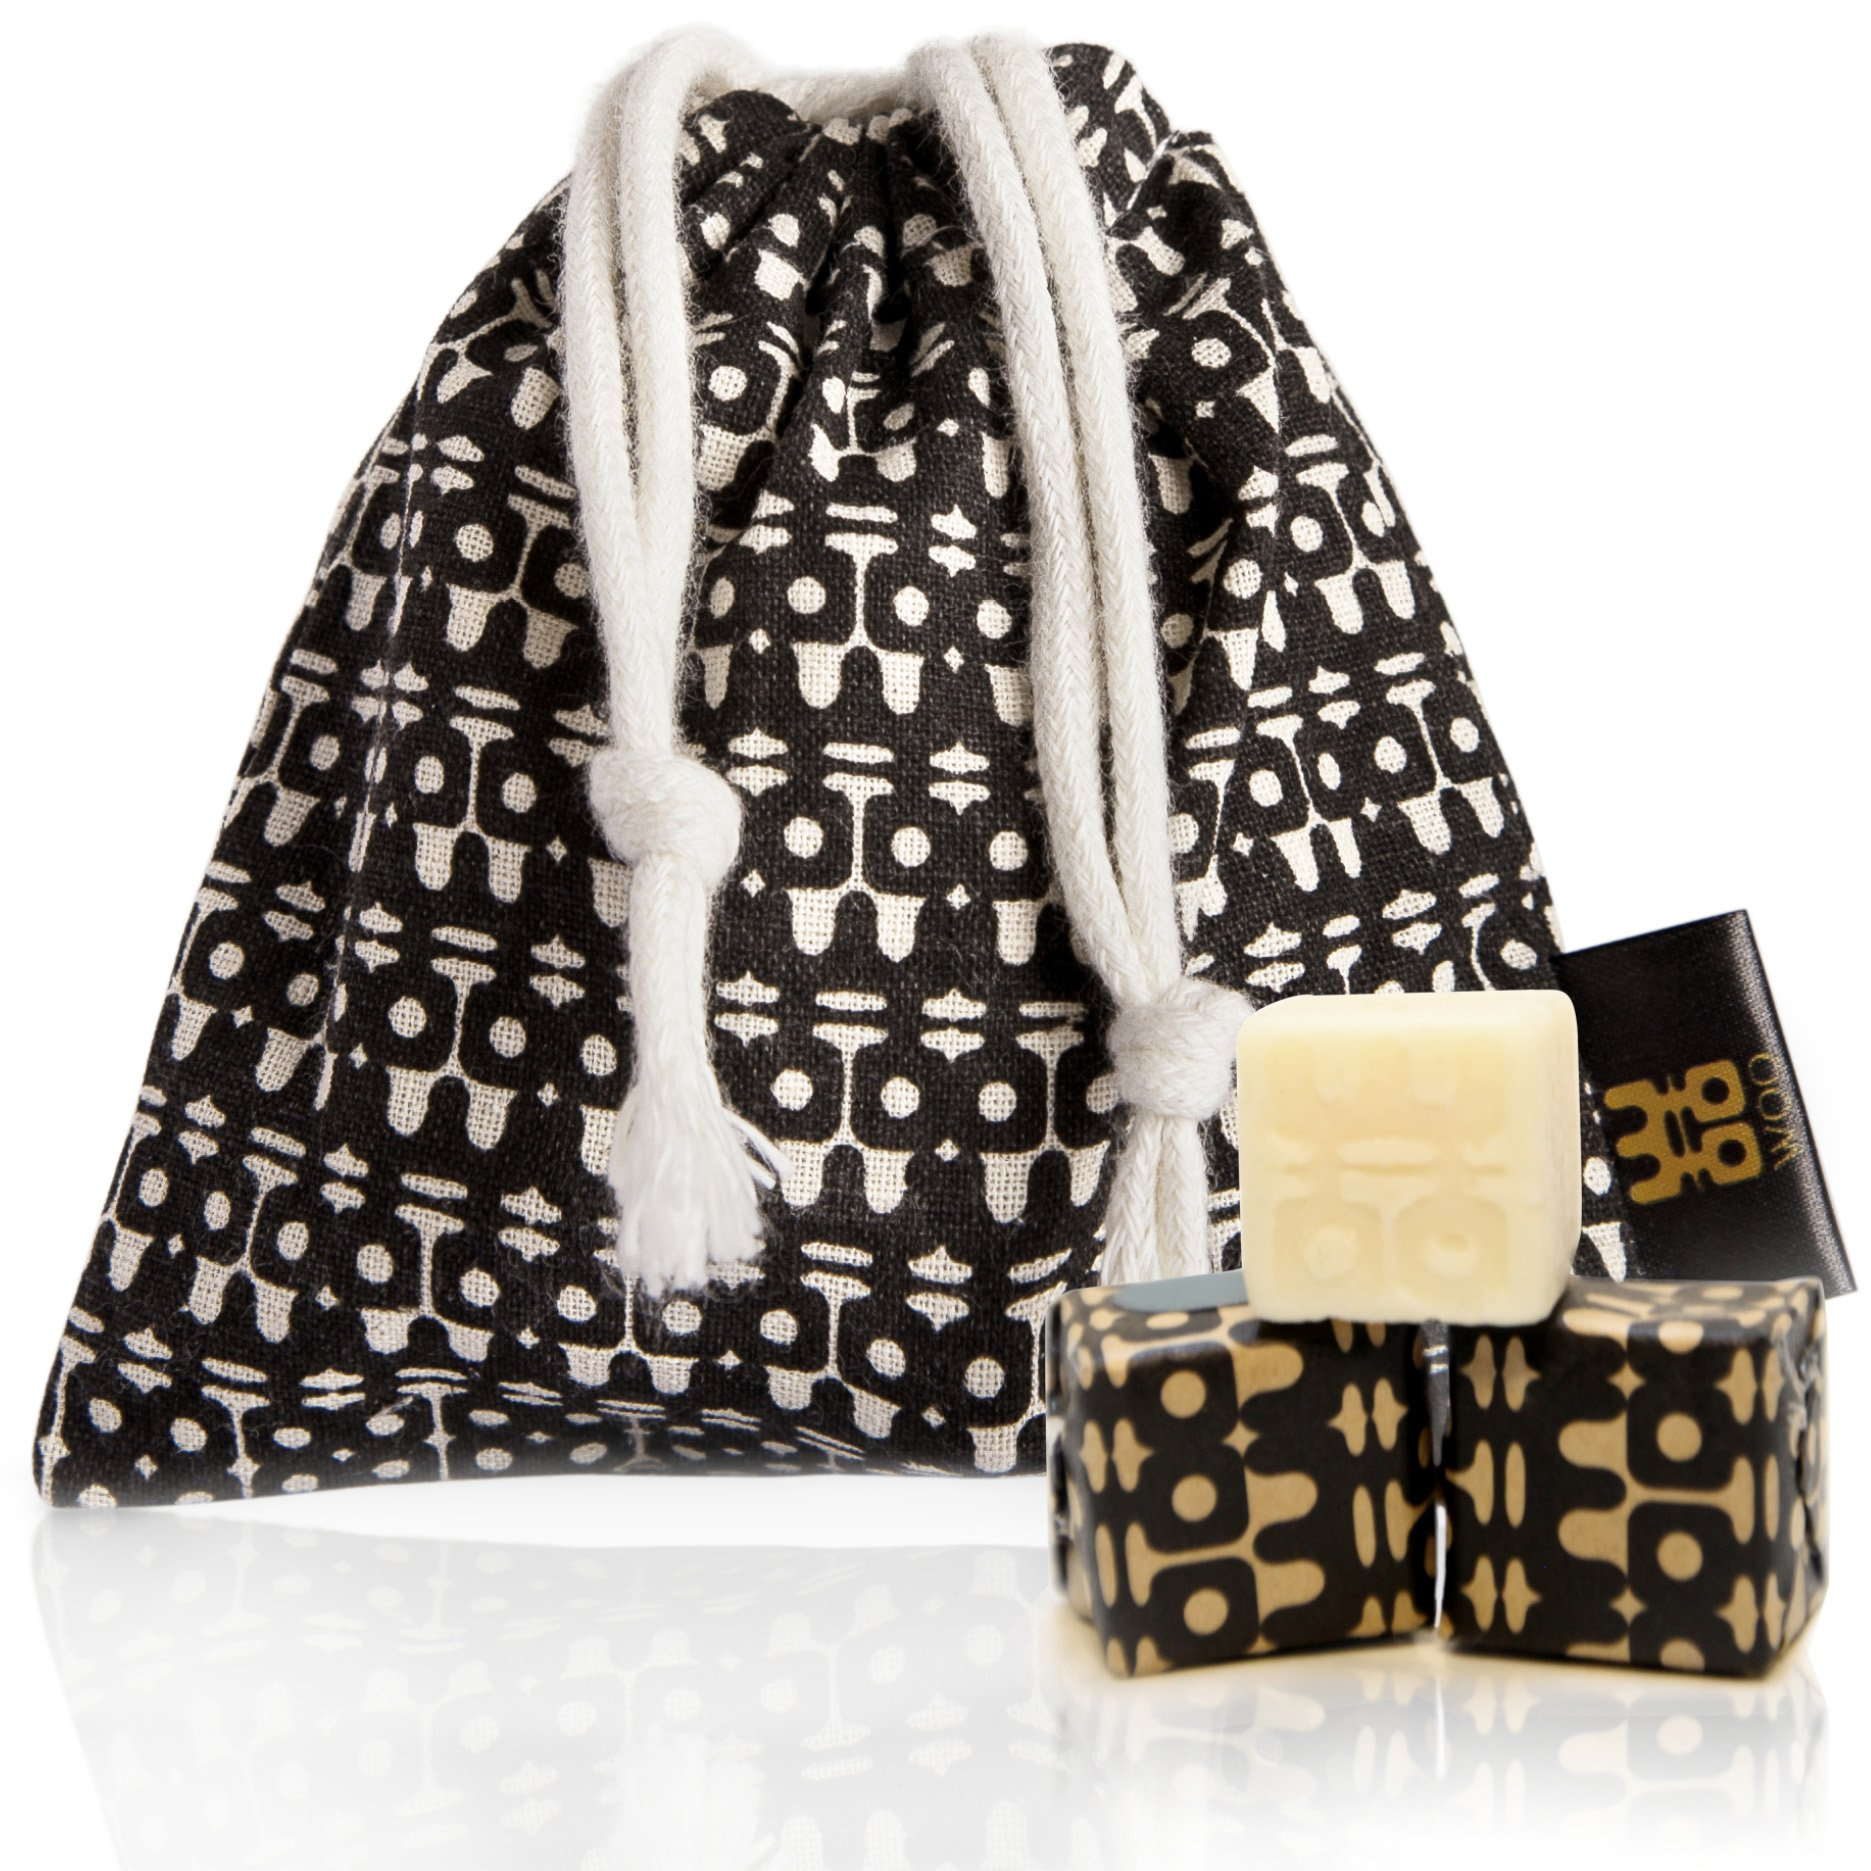 WOO Eco-Friendly Scented Sachets by Premium Handmade Beeswax Scented Cubes in an Exquisite Cotton Sachet | Perfect for Wardrobes, Drawers and Rooms | Lasts for Years (Treasure) by WOO (Image #1)